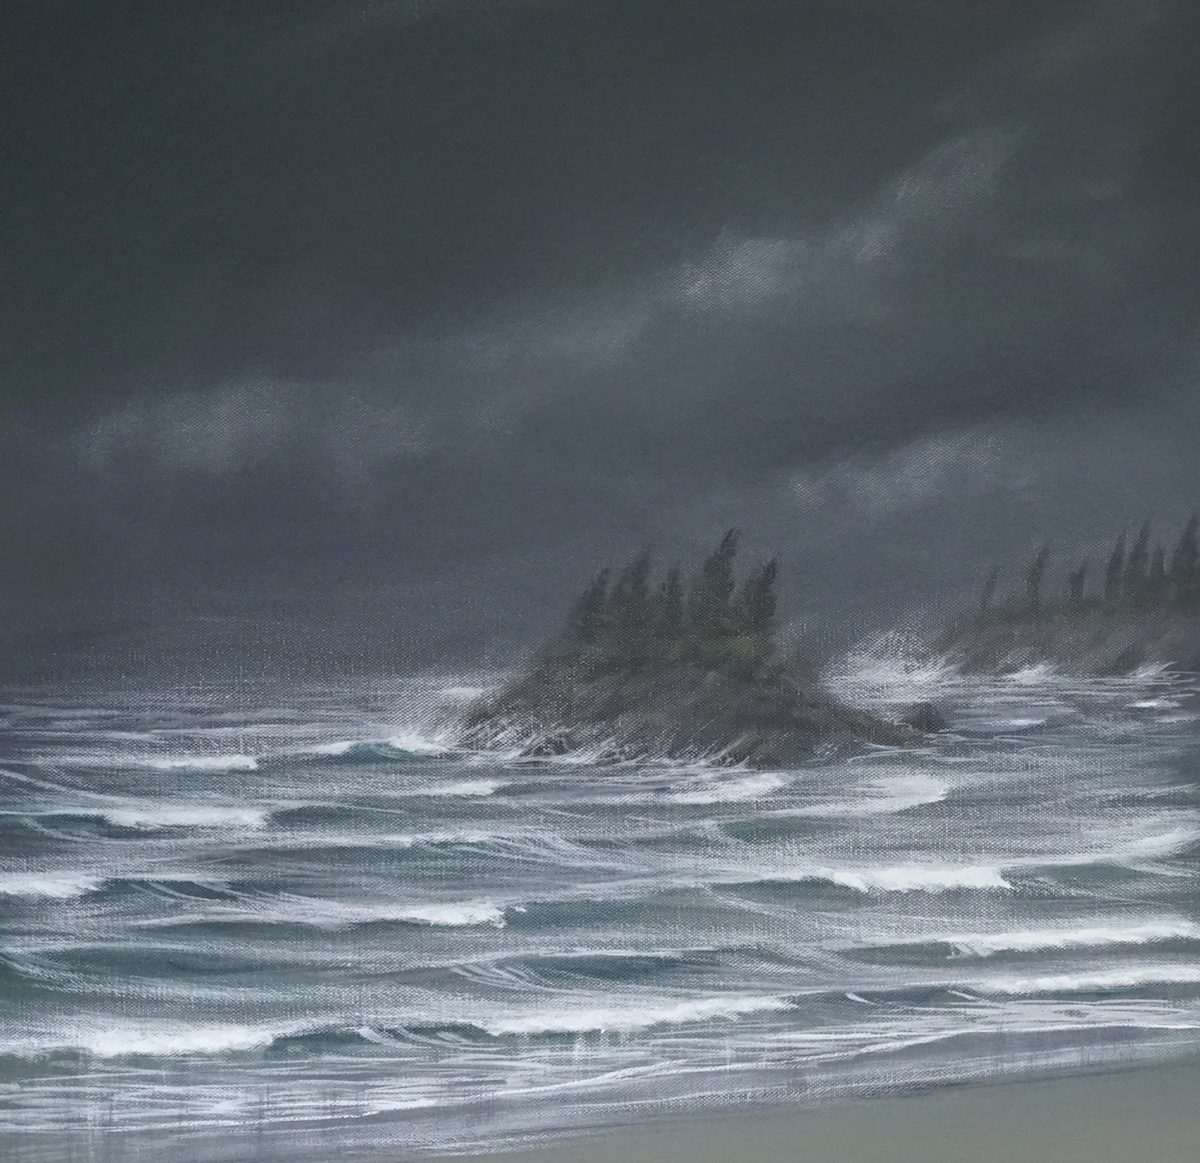 Adding reflections, windspray and directional effects with brush technique to enhance the idea of stormy conditions.